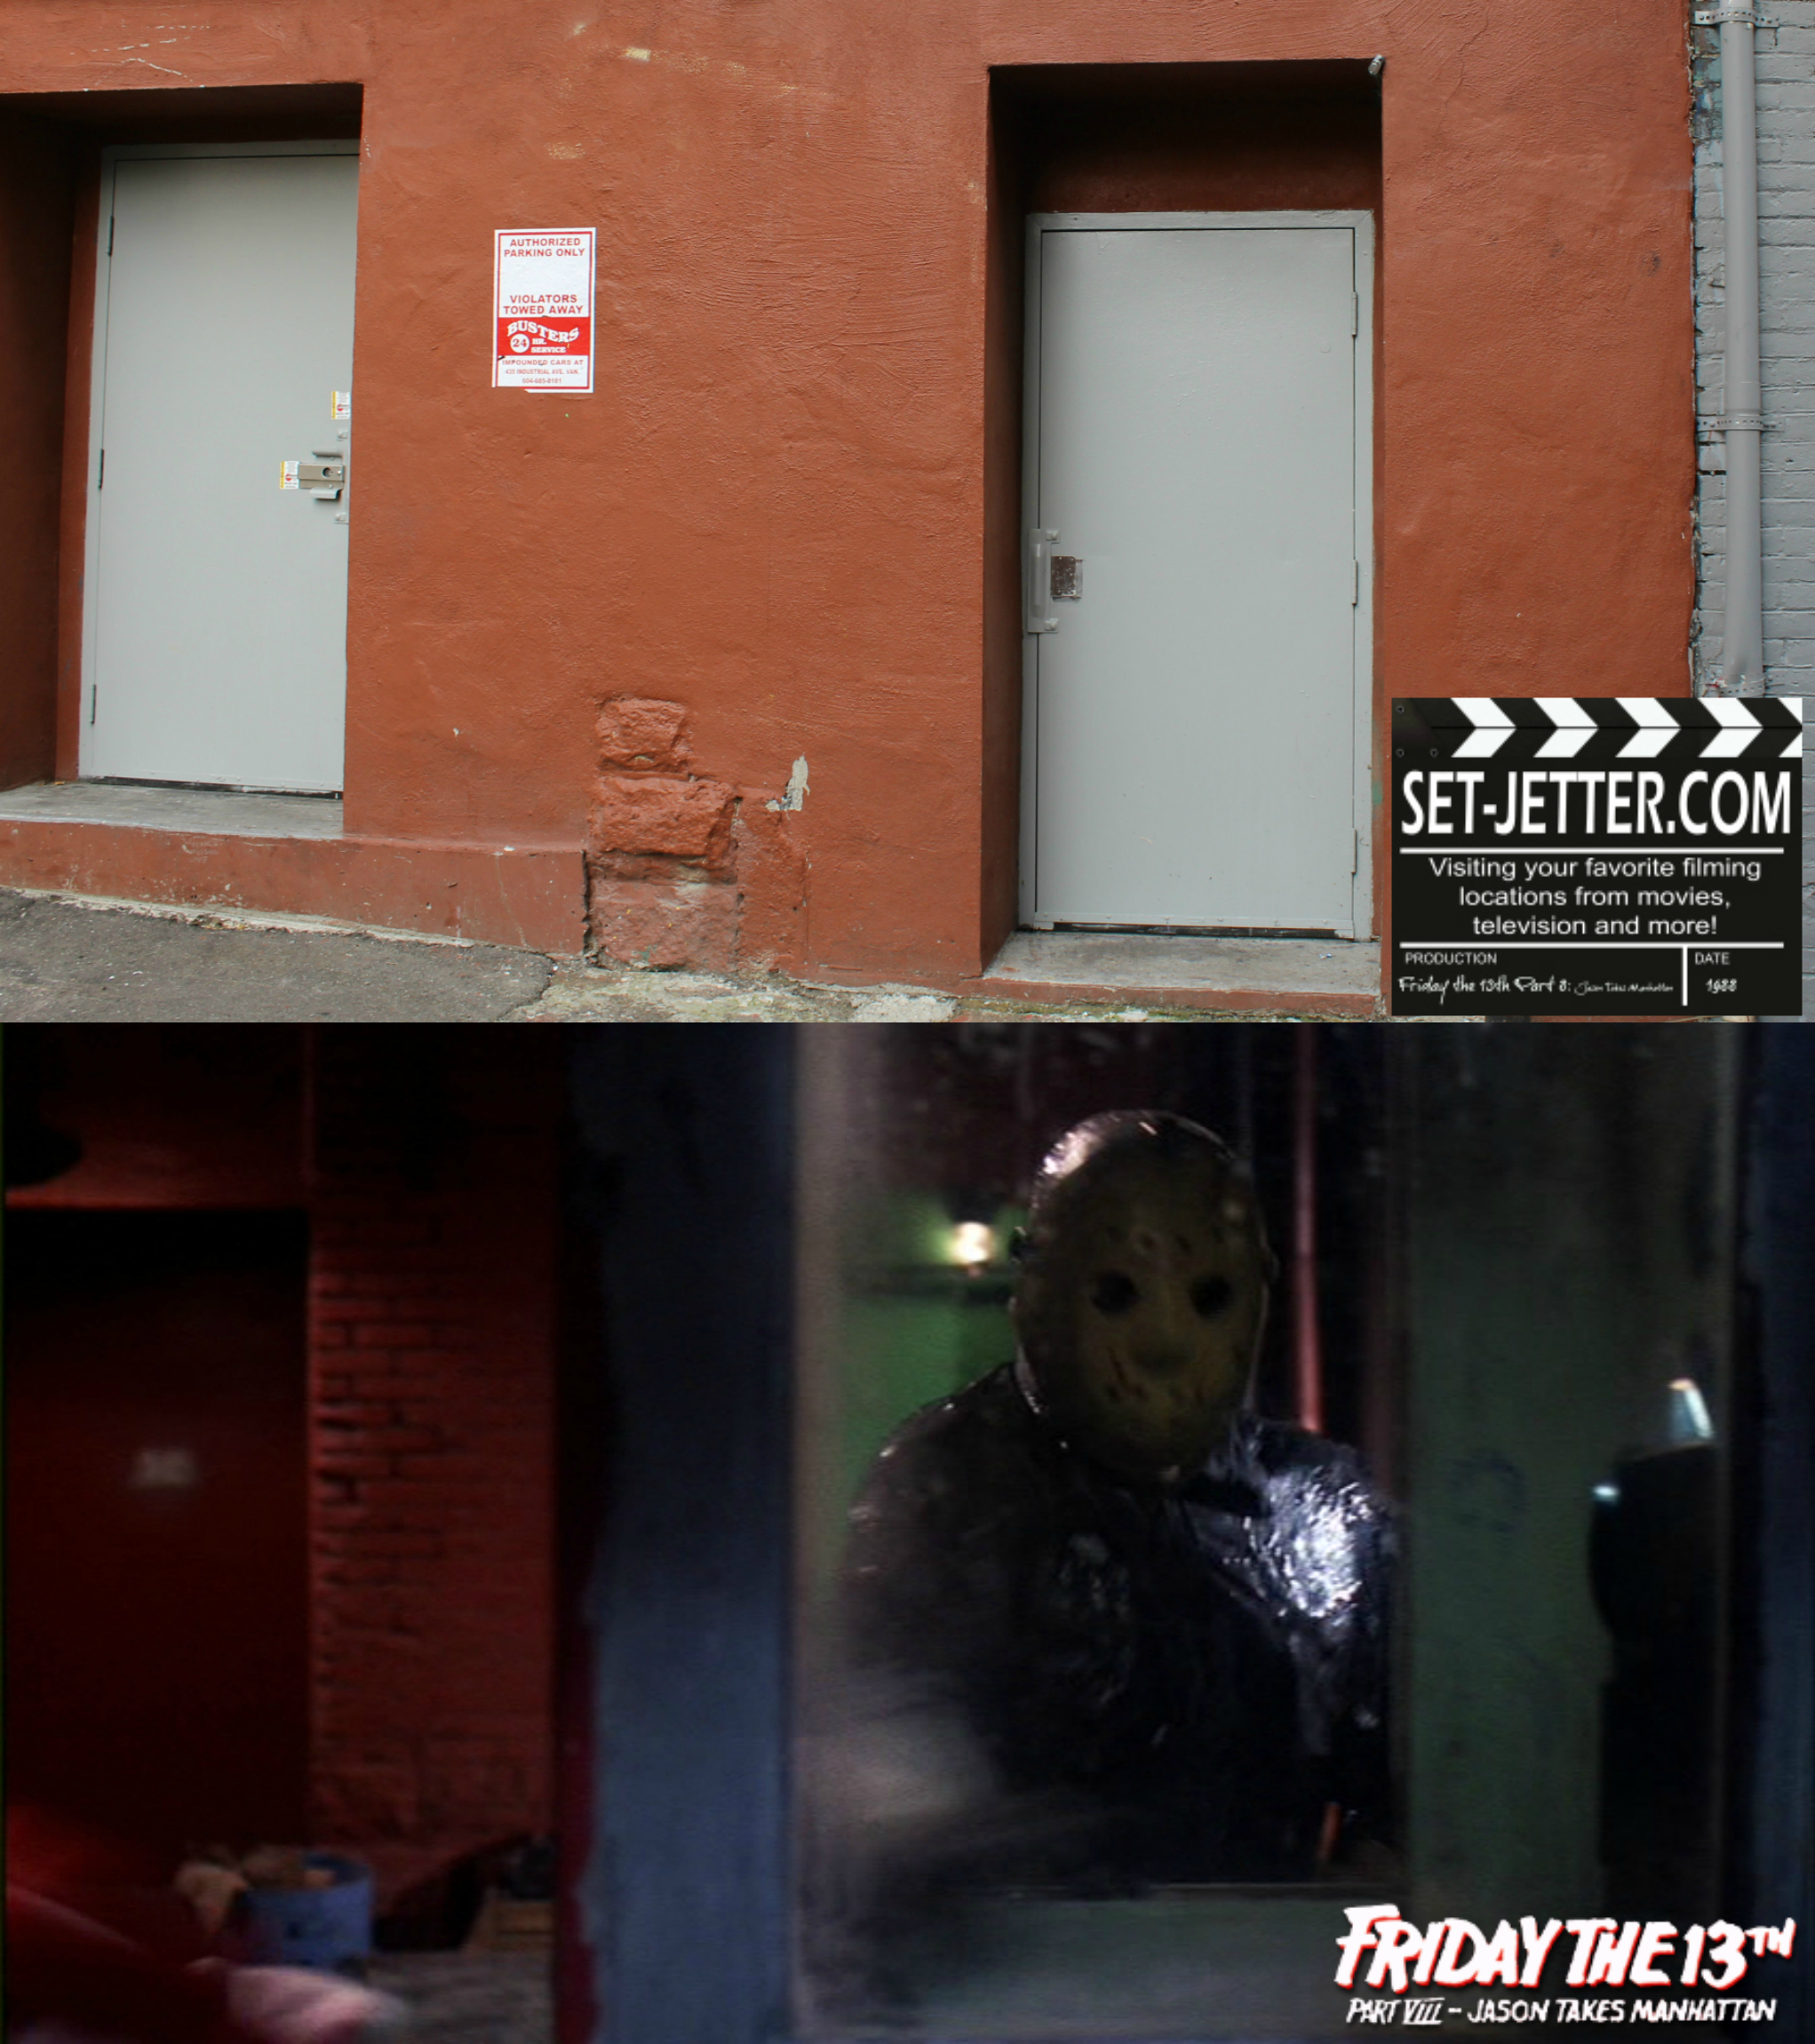 Friday the 13th Part 8 comparison 37.jpg